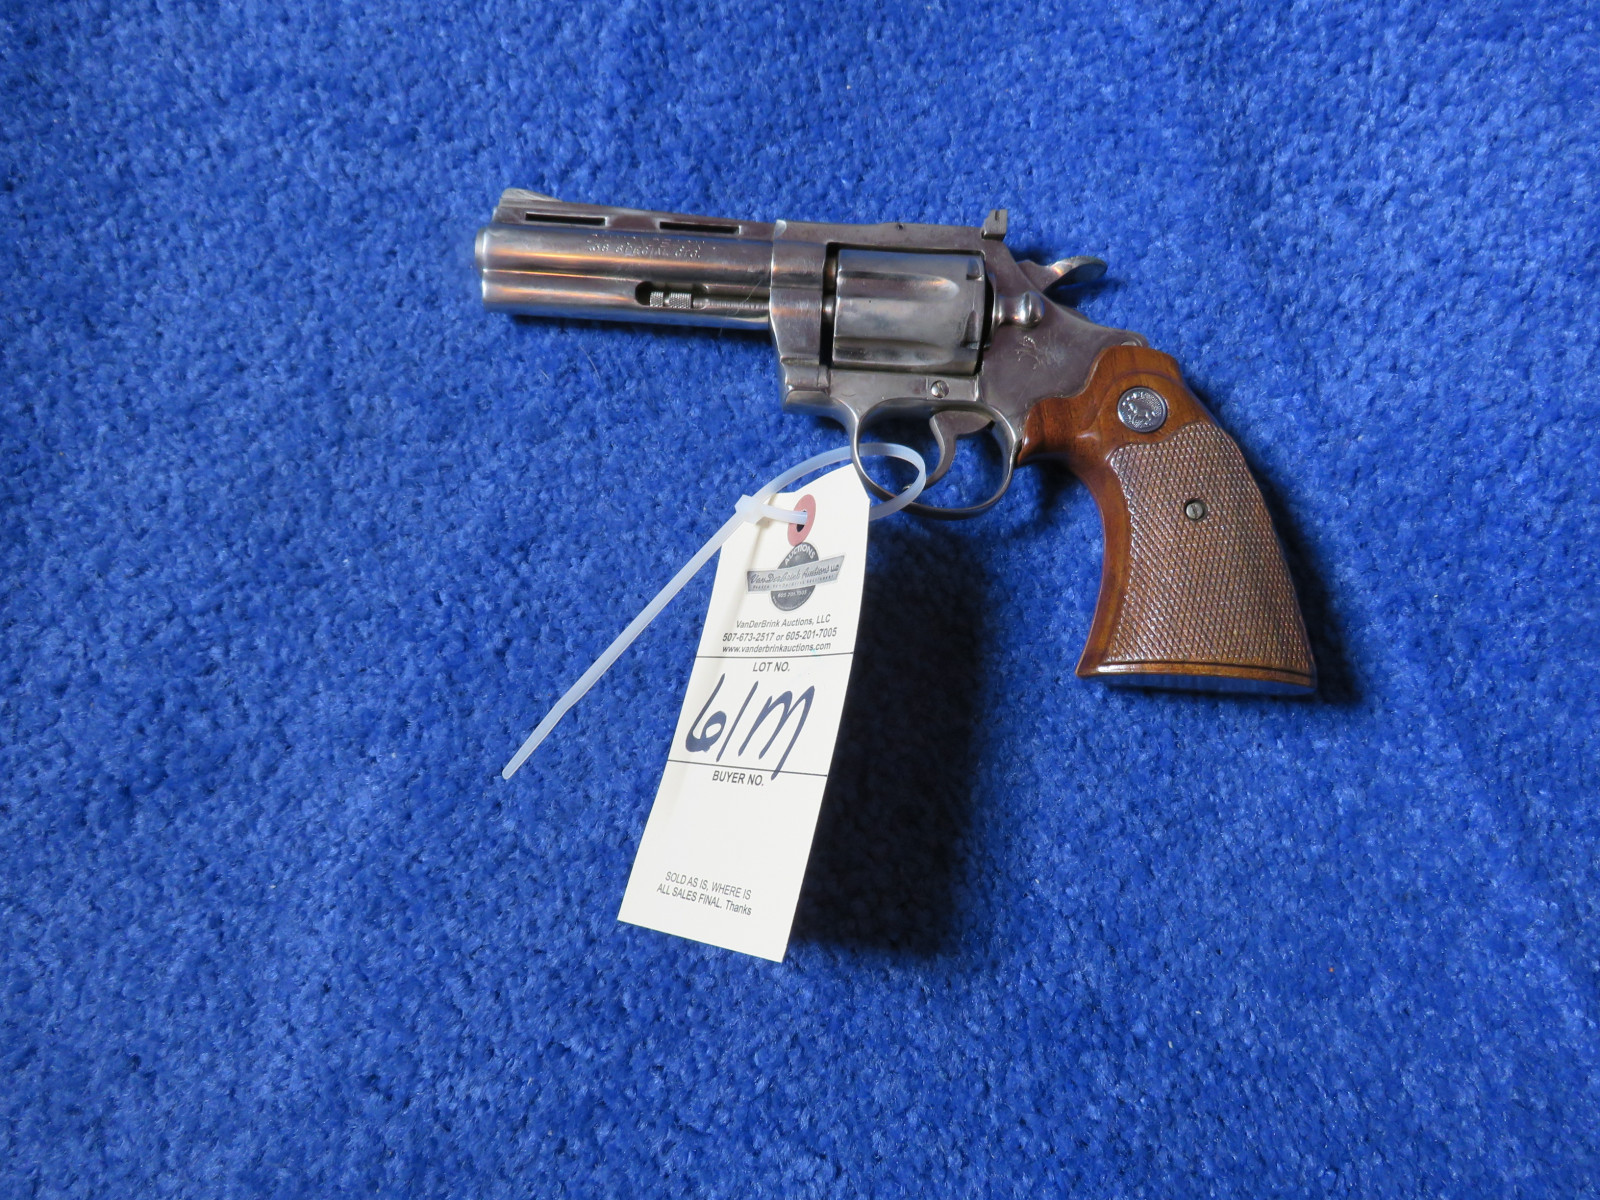 Colt Diamond Back .38 Special CTG Handgun - Image 1